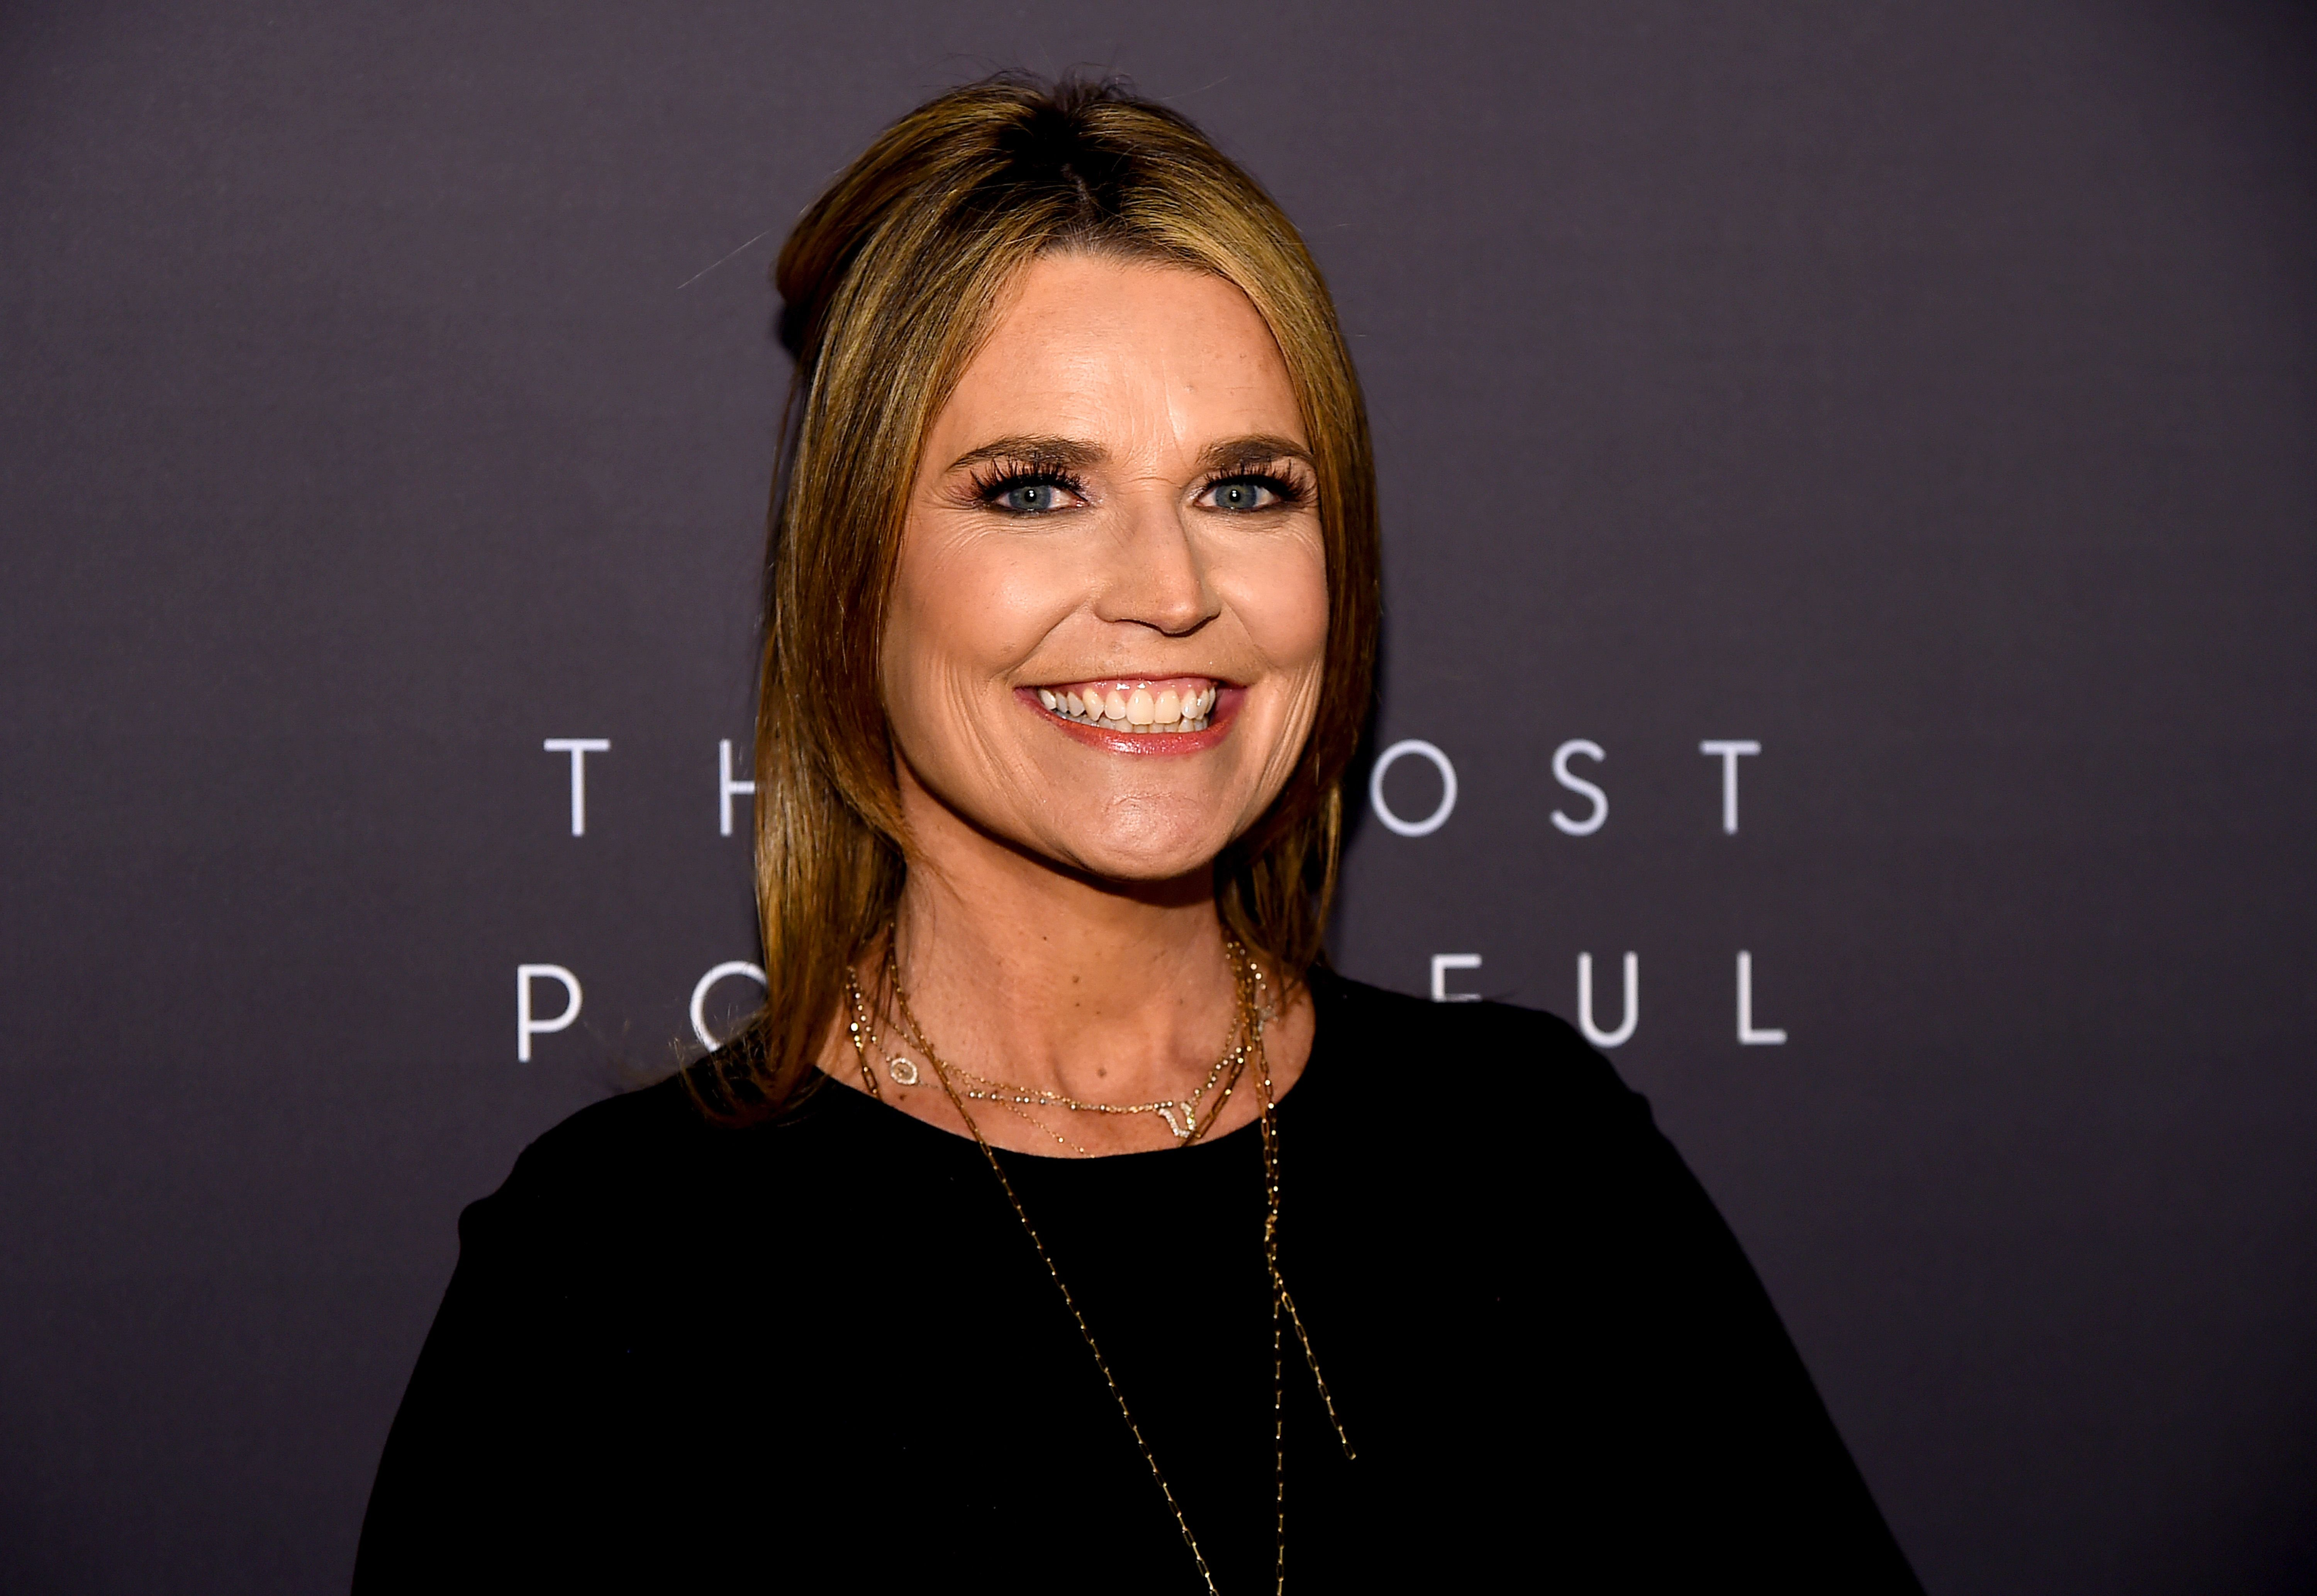 Savannah Guthrie at the The Hollywood Reporter's 9th Annual Most Powerful People In Media at The Pool on April 11, 2019 | Photo: Getty Images